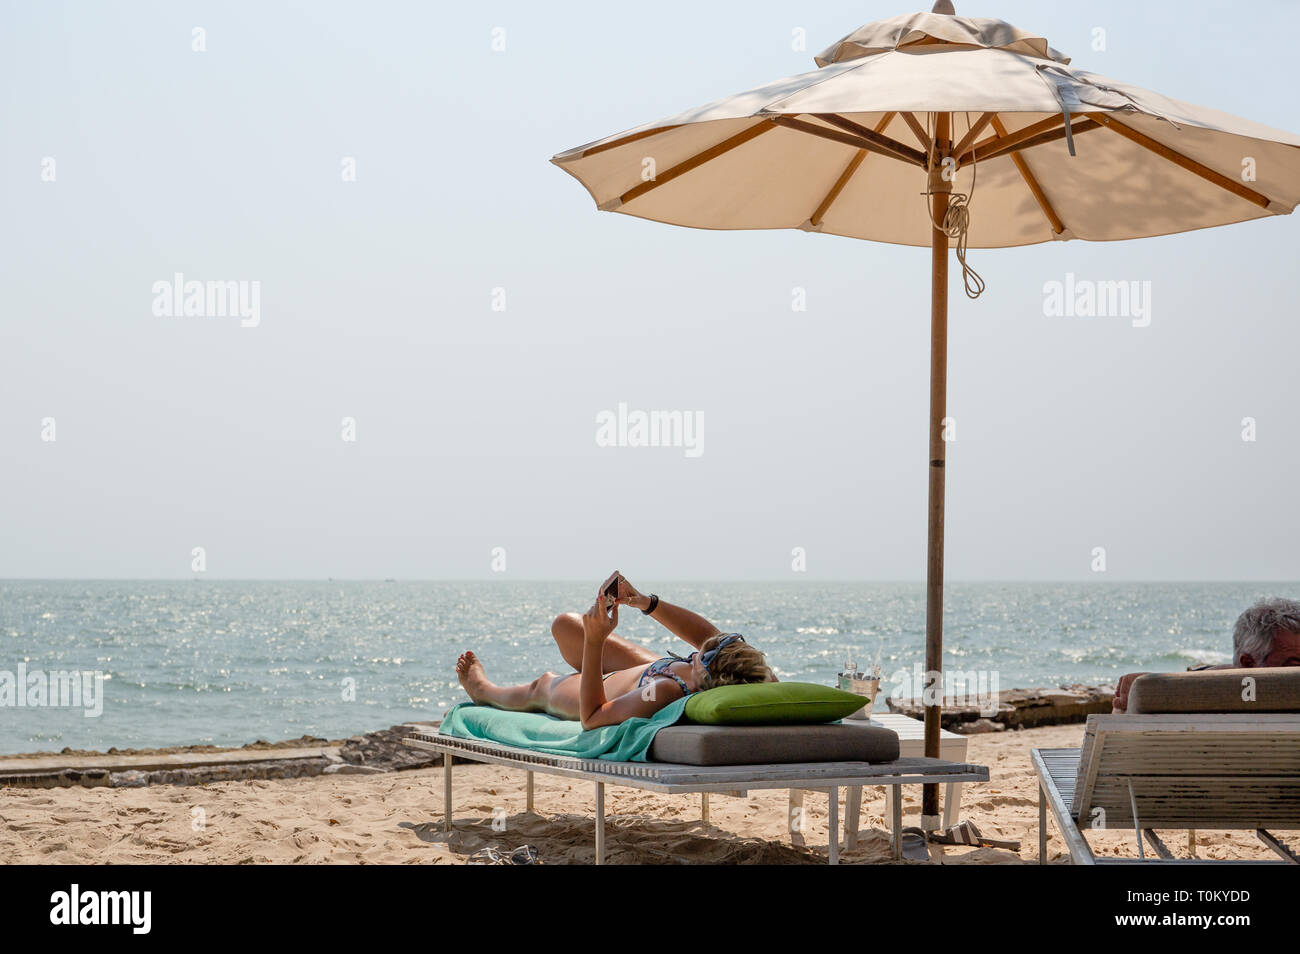 Retried couple lying on deckchairs using cell phone on the beach. - Stock Image